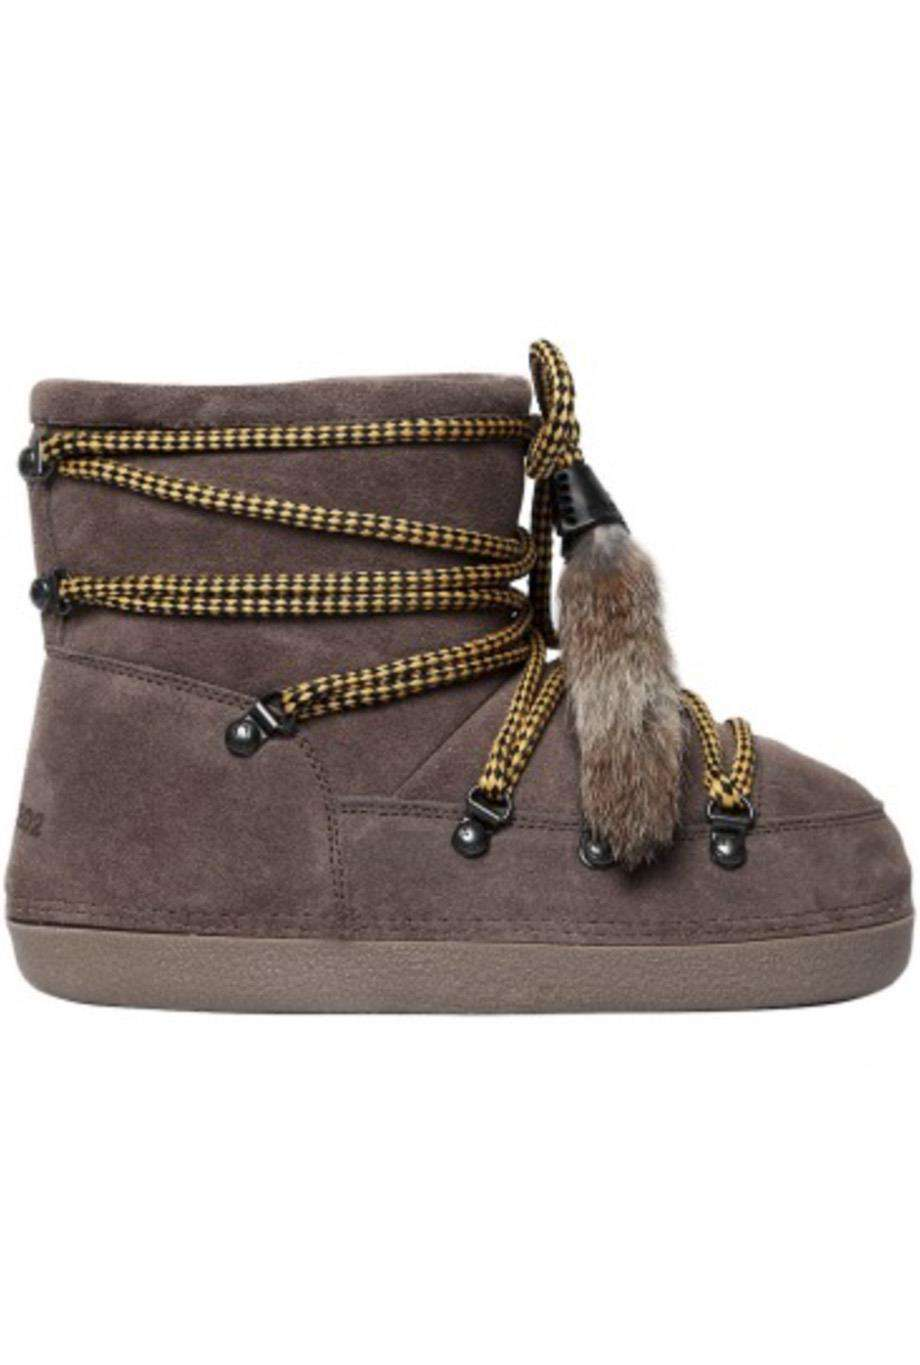 DSQUARED2 RIRI RACCOON FUR AND SUEDE ANKLE BOOTS EU 38-40 UK 5-7 US 8-10